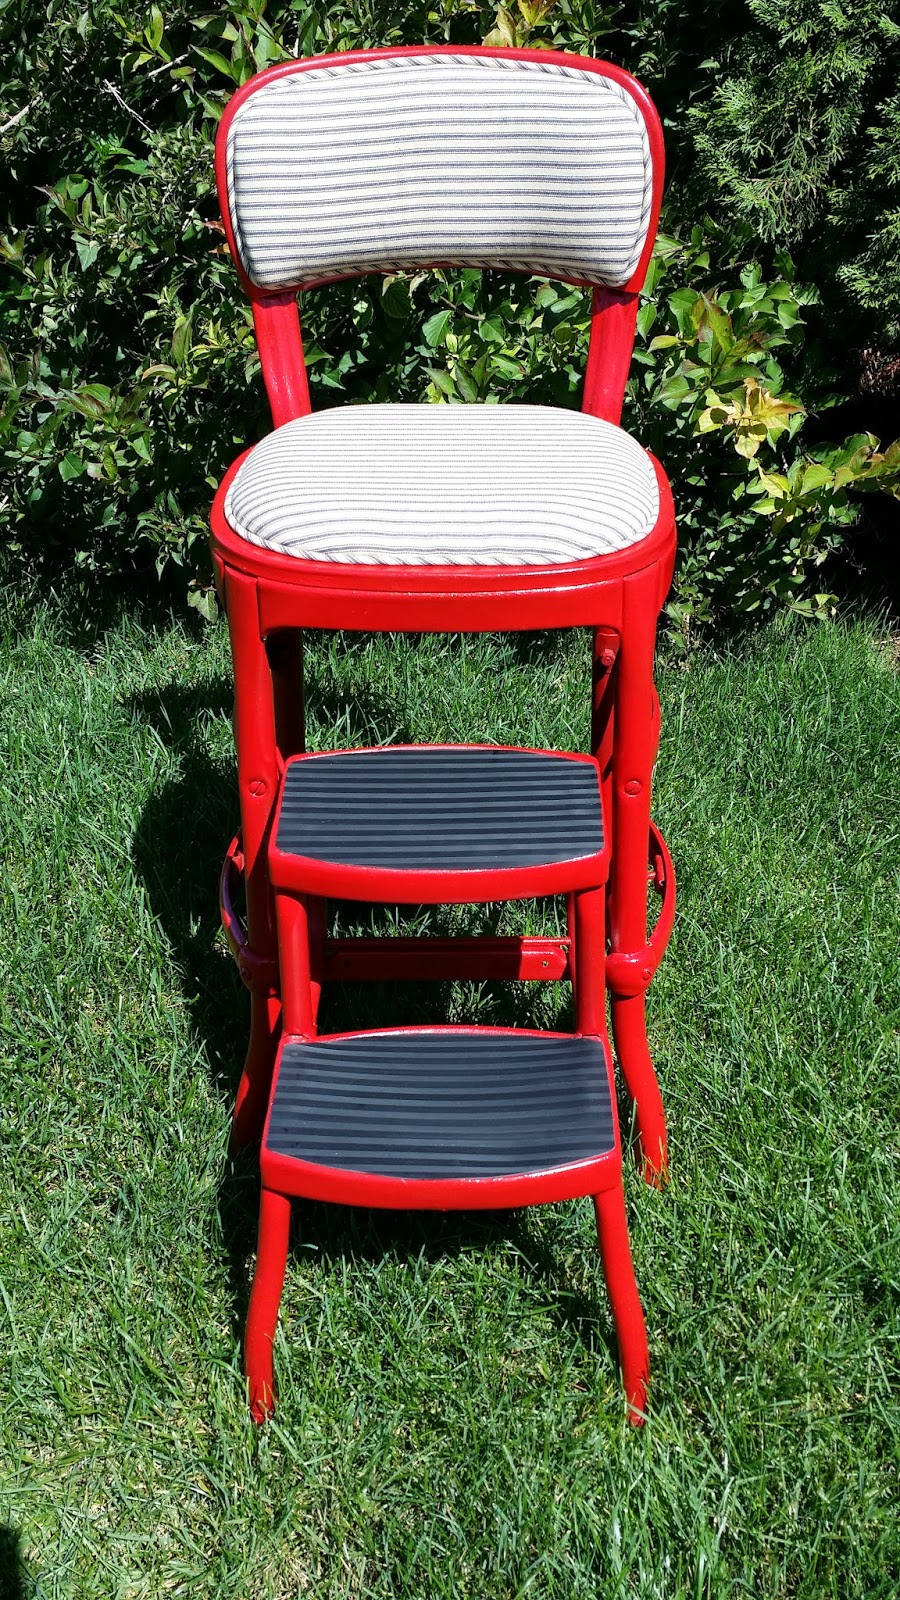 Before and After Vintage Metal Step Stool DIY : vintage metal step stool chair - islam-shia.org